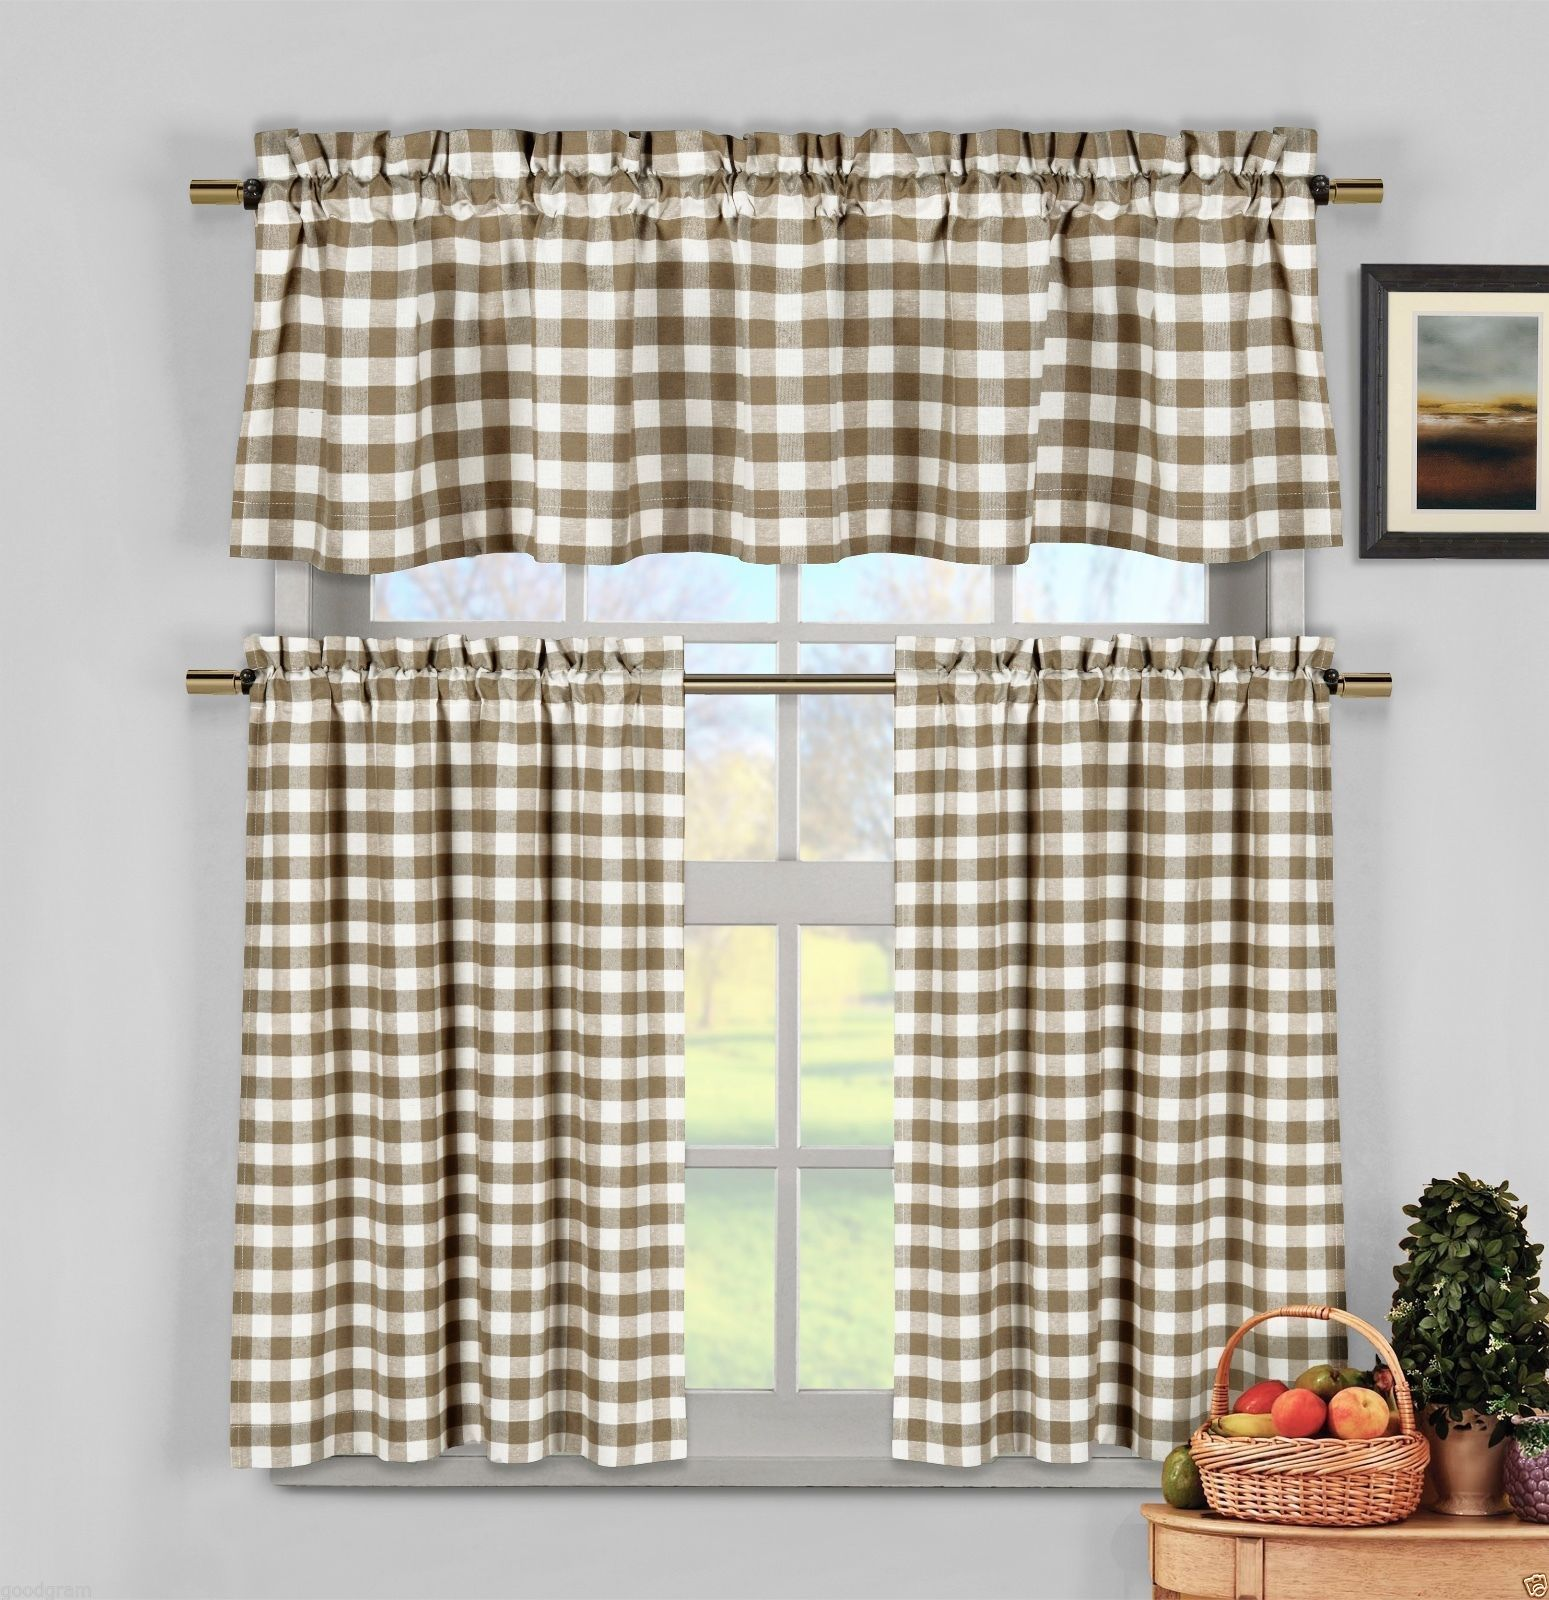 Taupe Gingham Checkered Plaid Kitchen Tier Curtain Valance